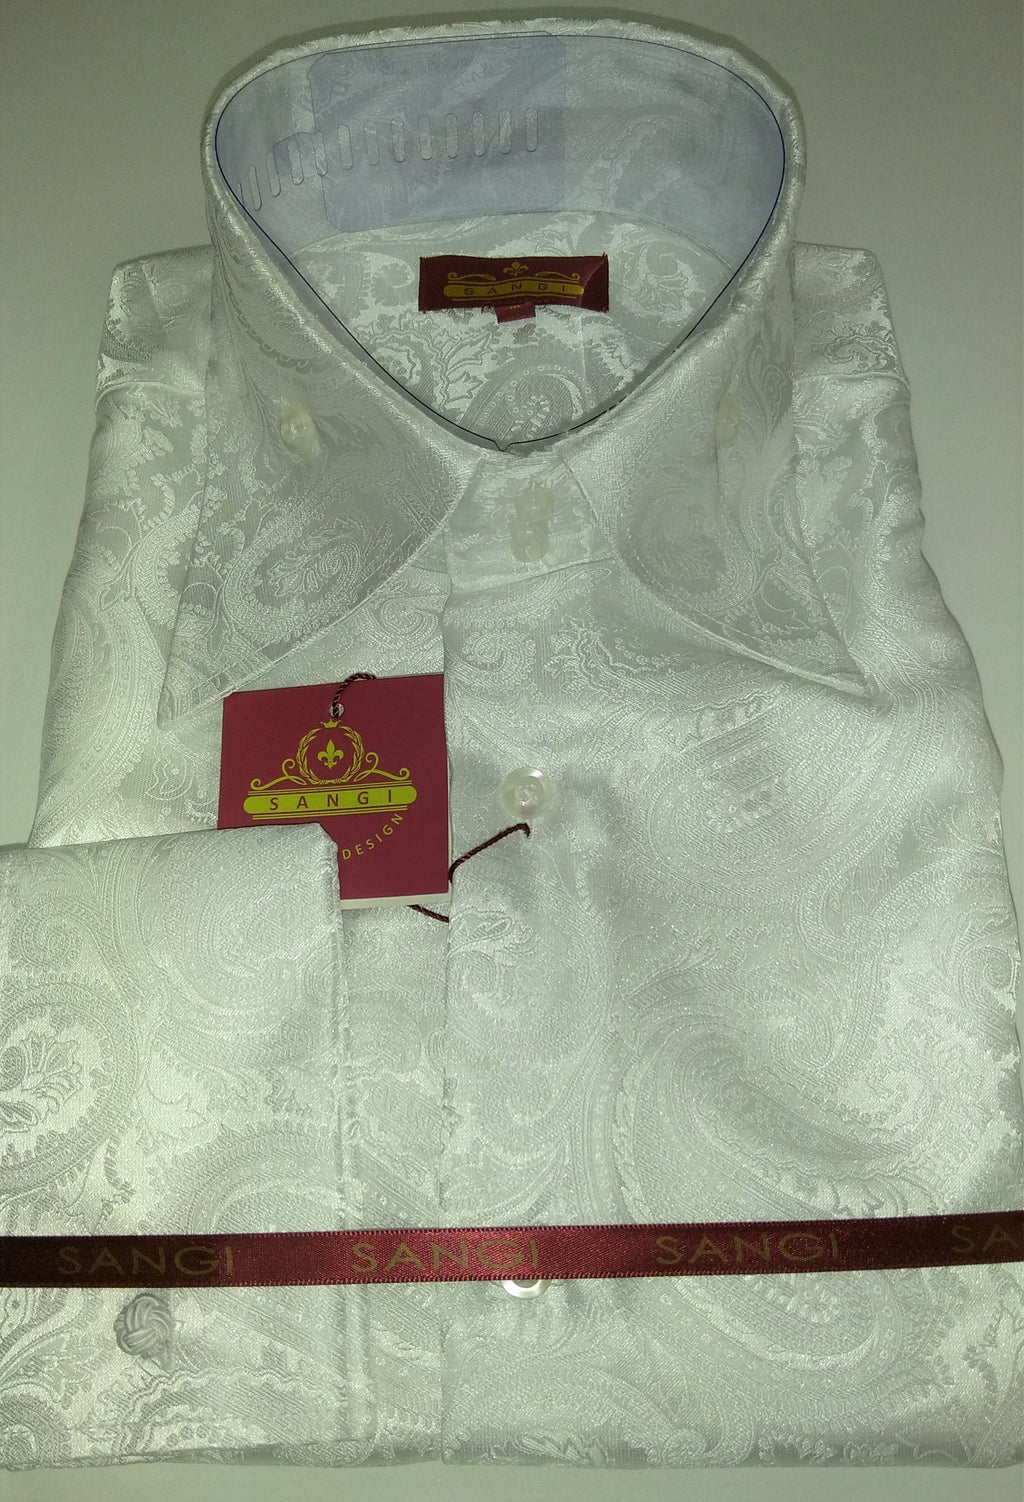 Mens Shimmery White Paisley High Collar F/C Shirt SANGI MILAN COLLECTION # 2035